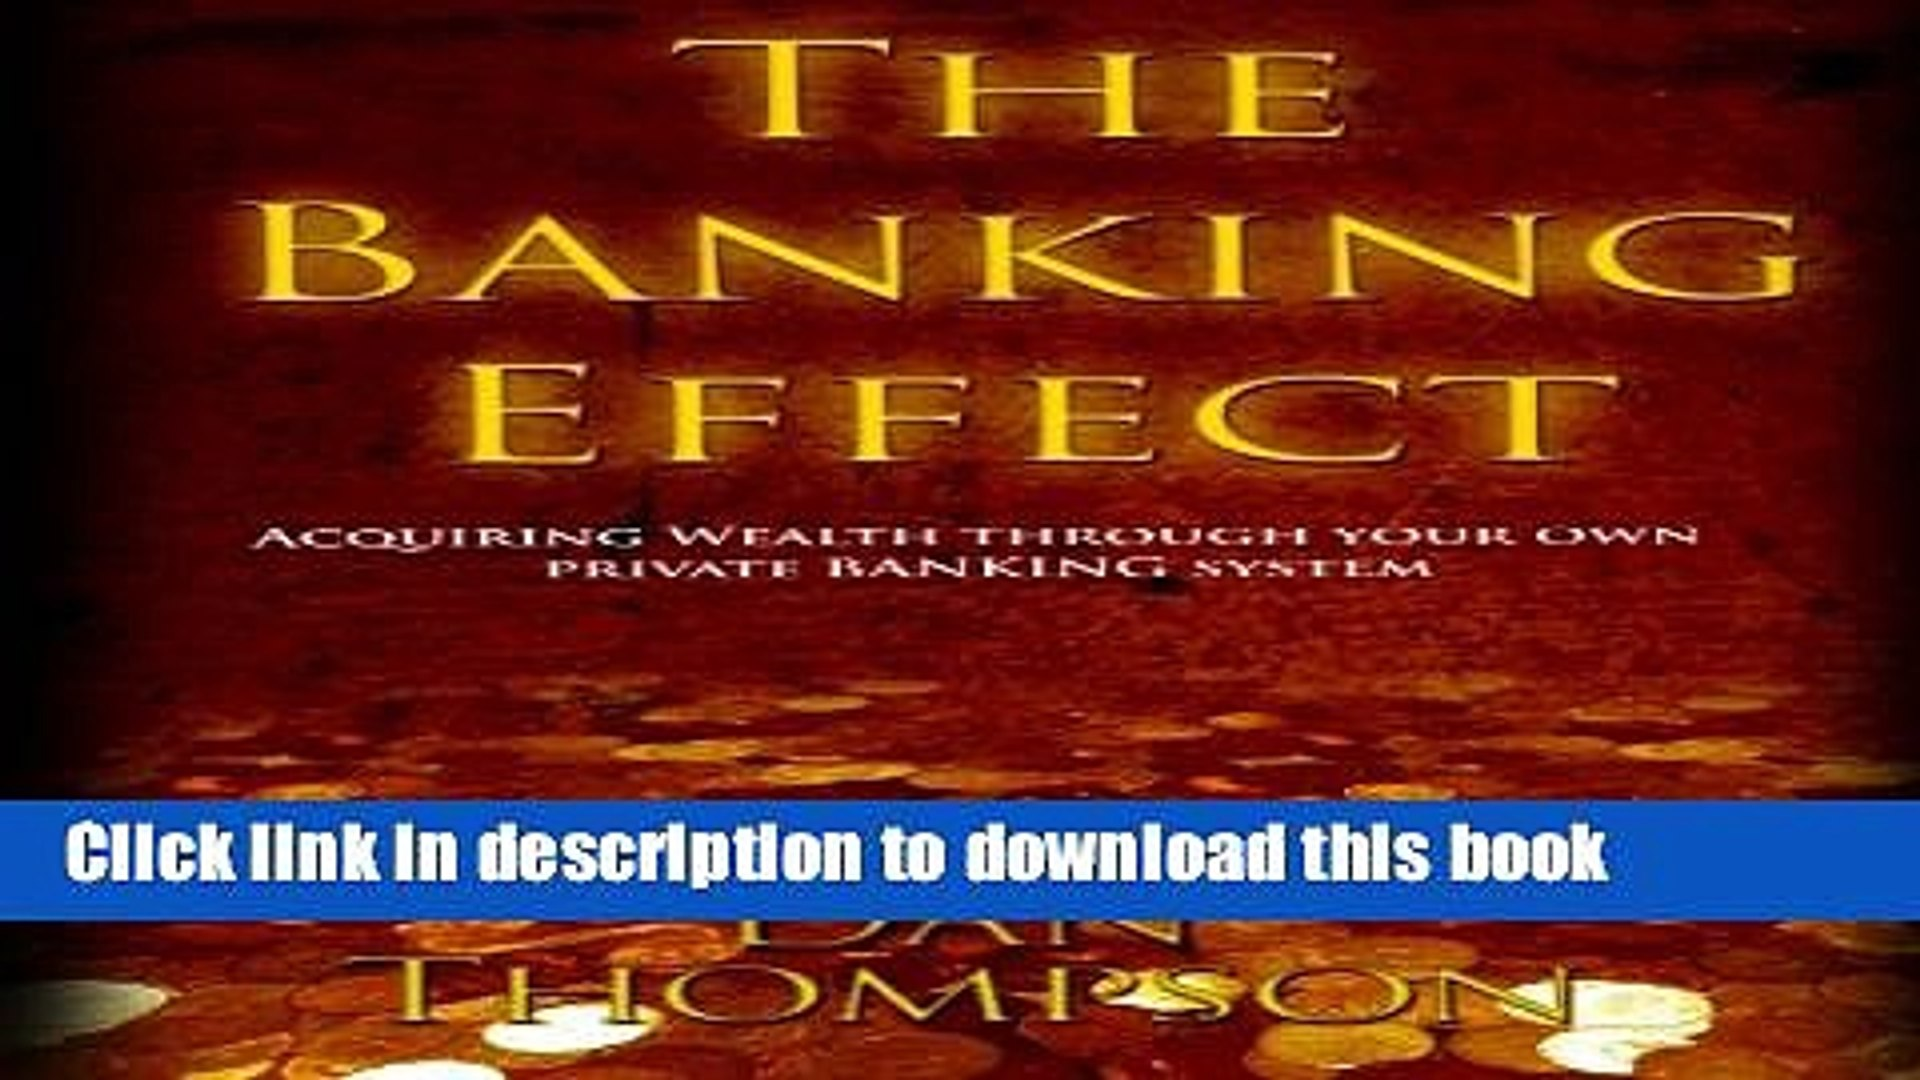 [Popular] Books The Banking Effect: Acquiring wealth through your own Private Banking System. Free